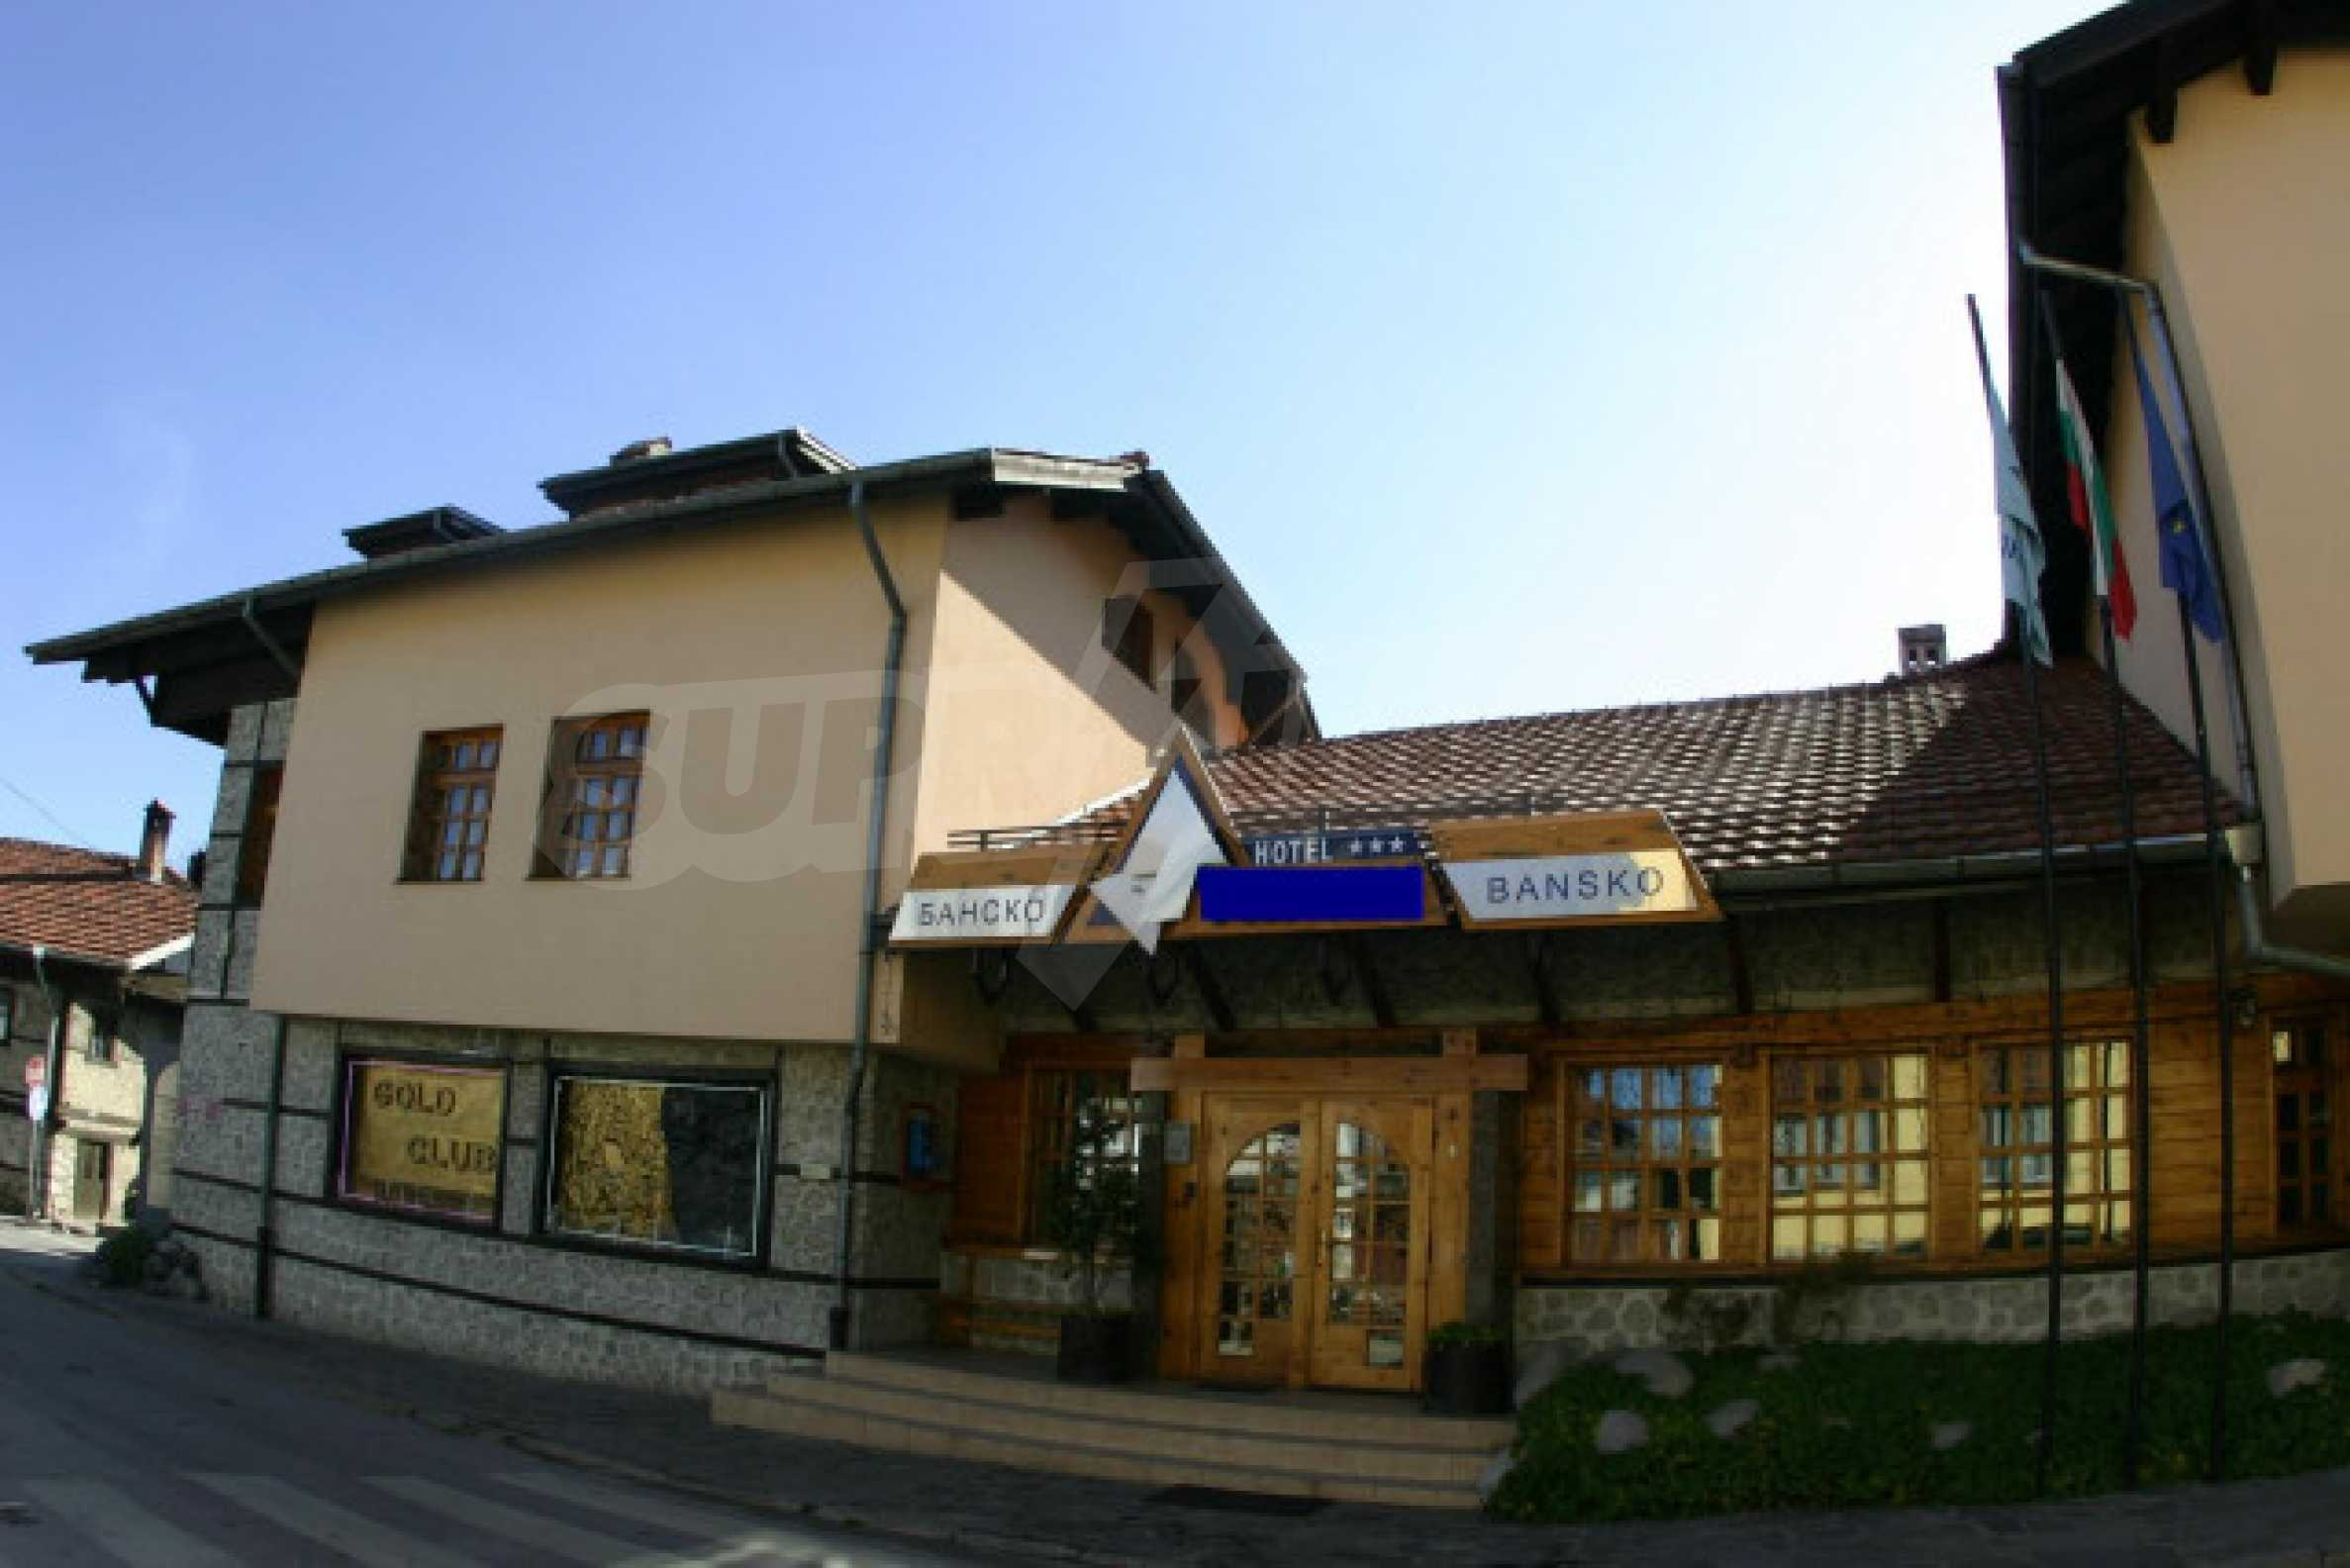 Hotel on the main shopping street of Bansko